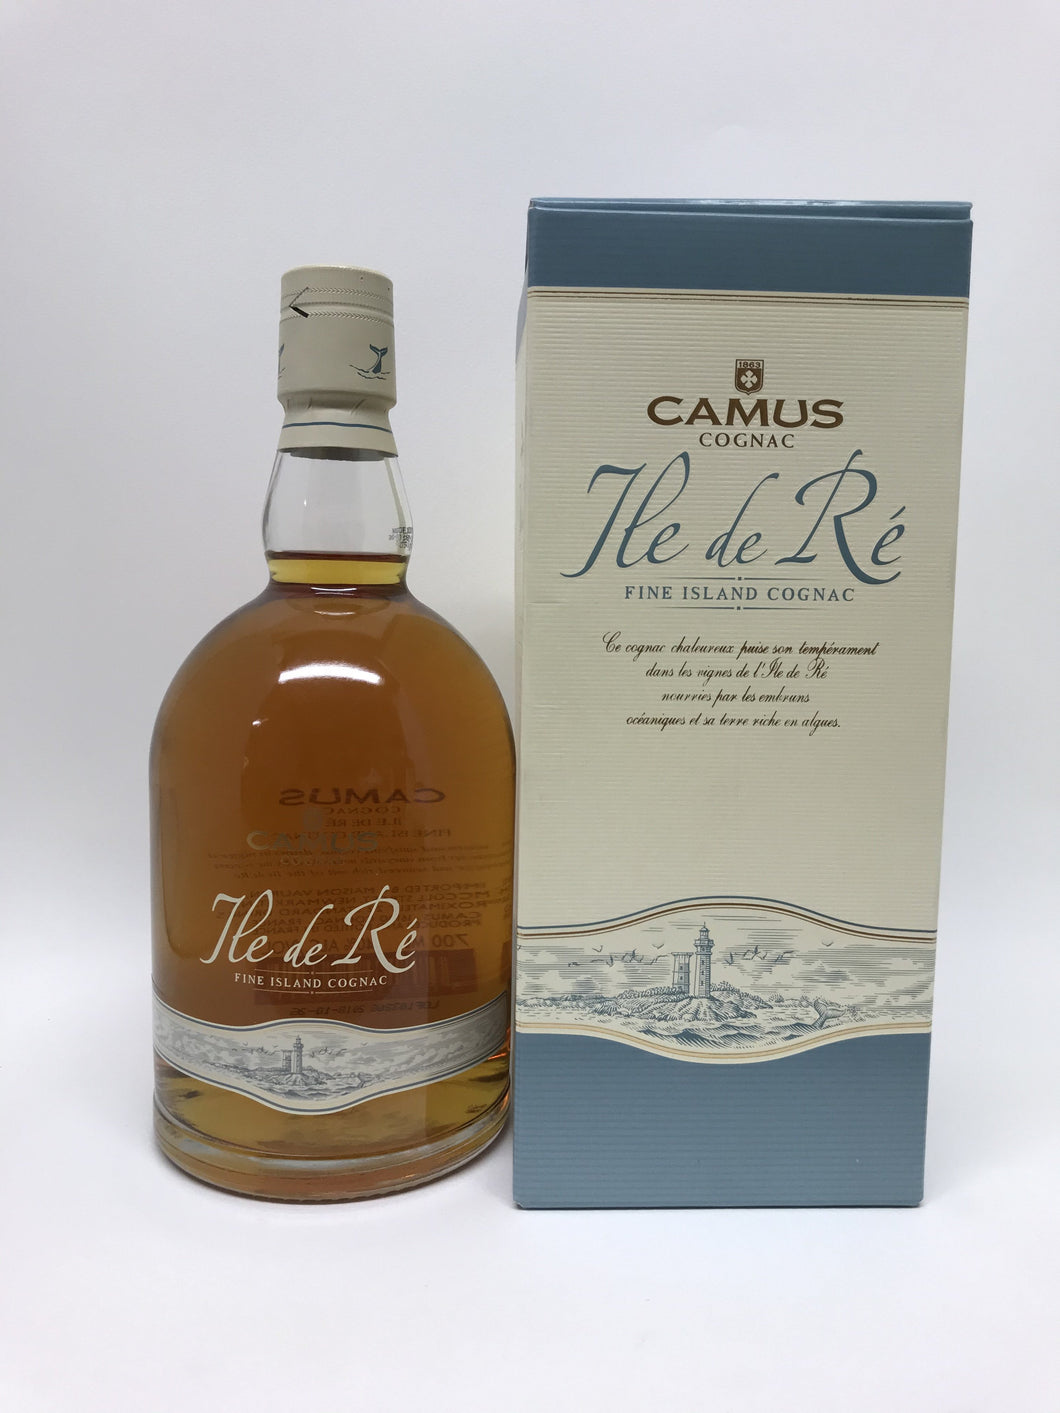 Camus - Ile de Re, Fine Island Cognac 700ml